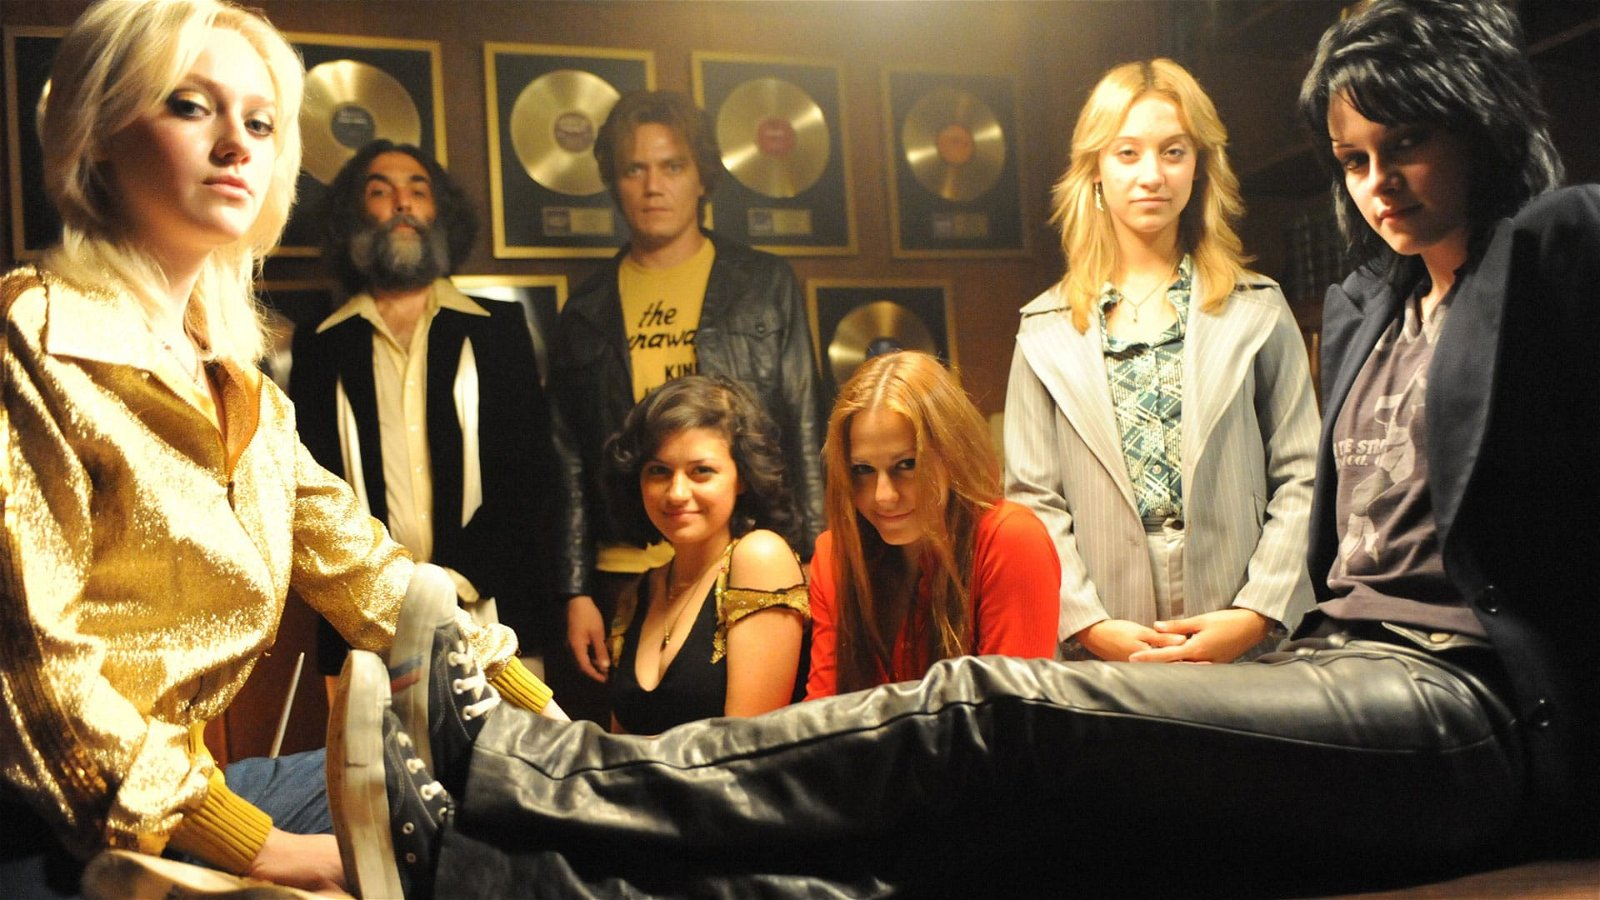 The Runaways (2010) Review 4